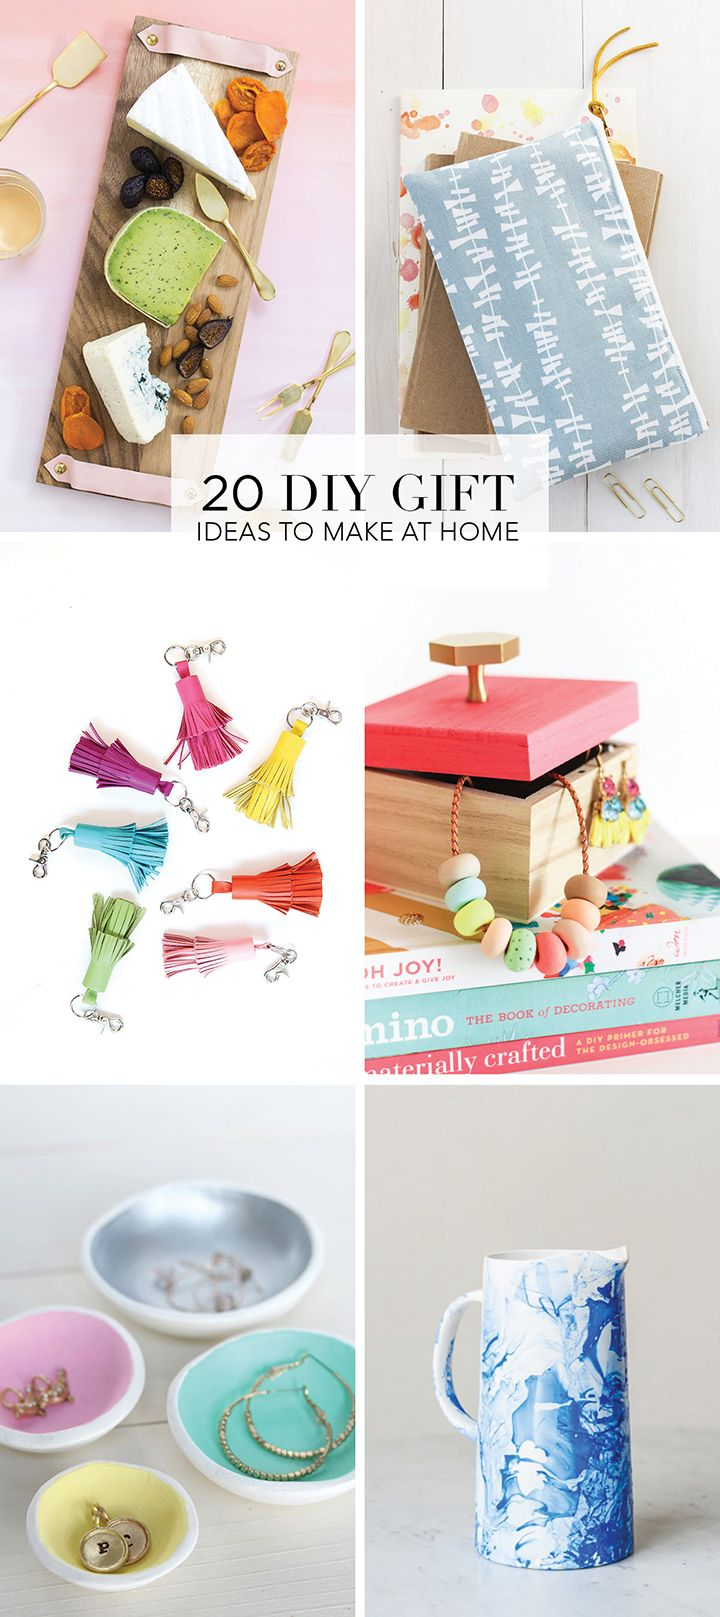 20 DIY Holiday Gift Ideas | Handmade, Gift ideas and At home